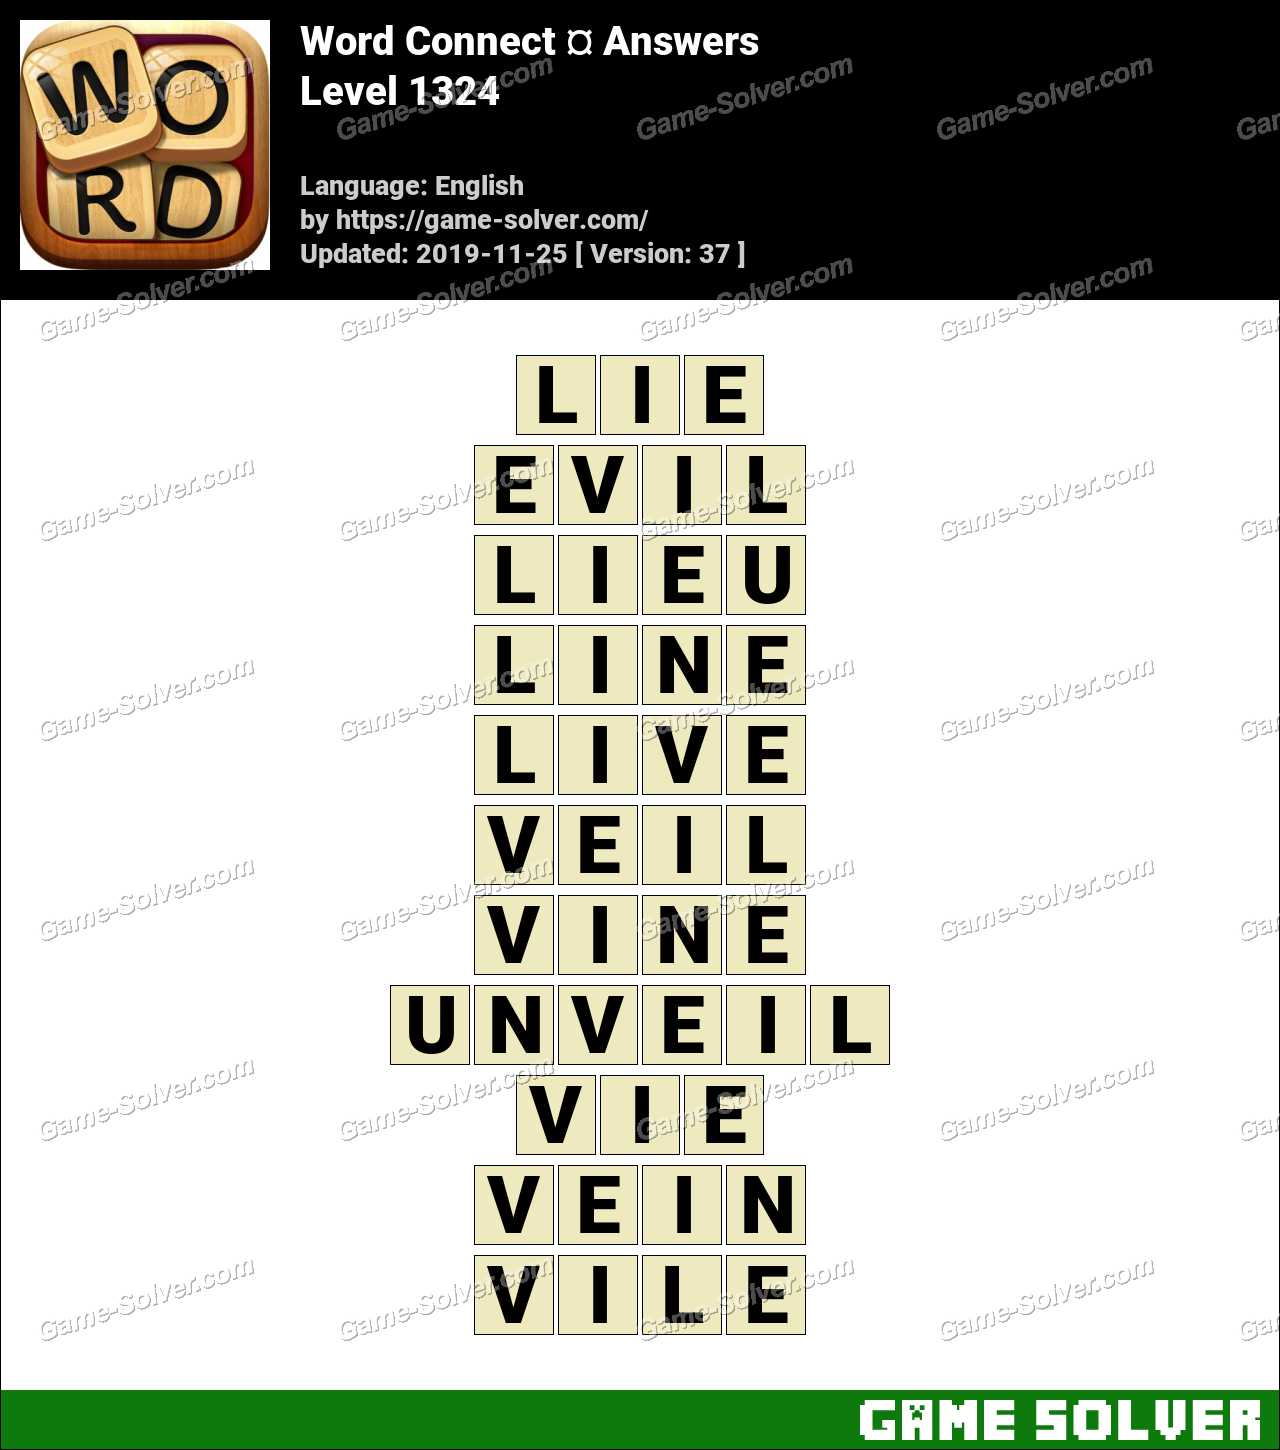 Word Connect Level 1324 Answers